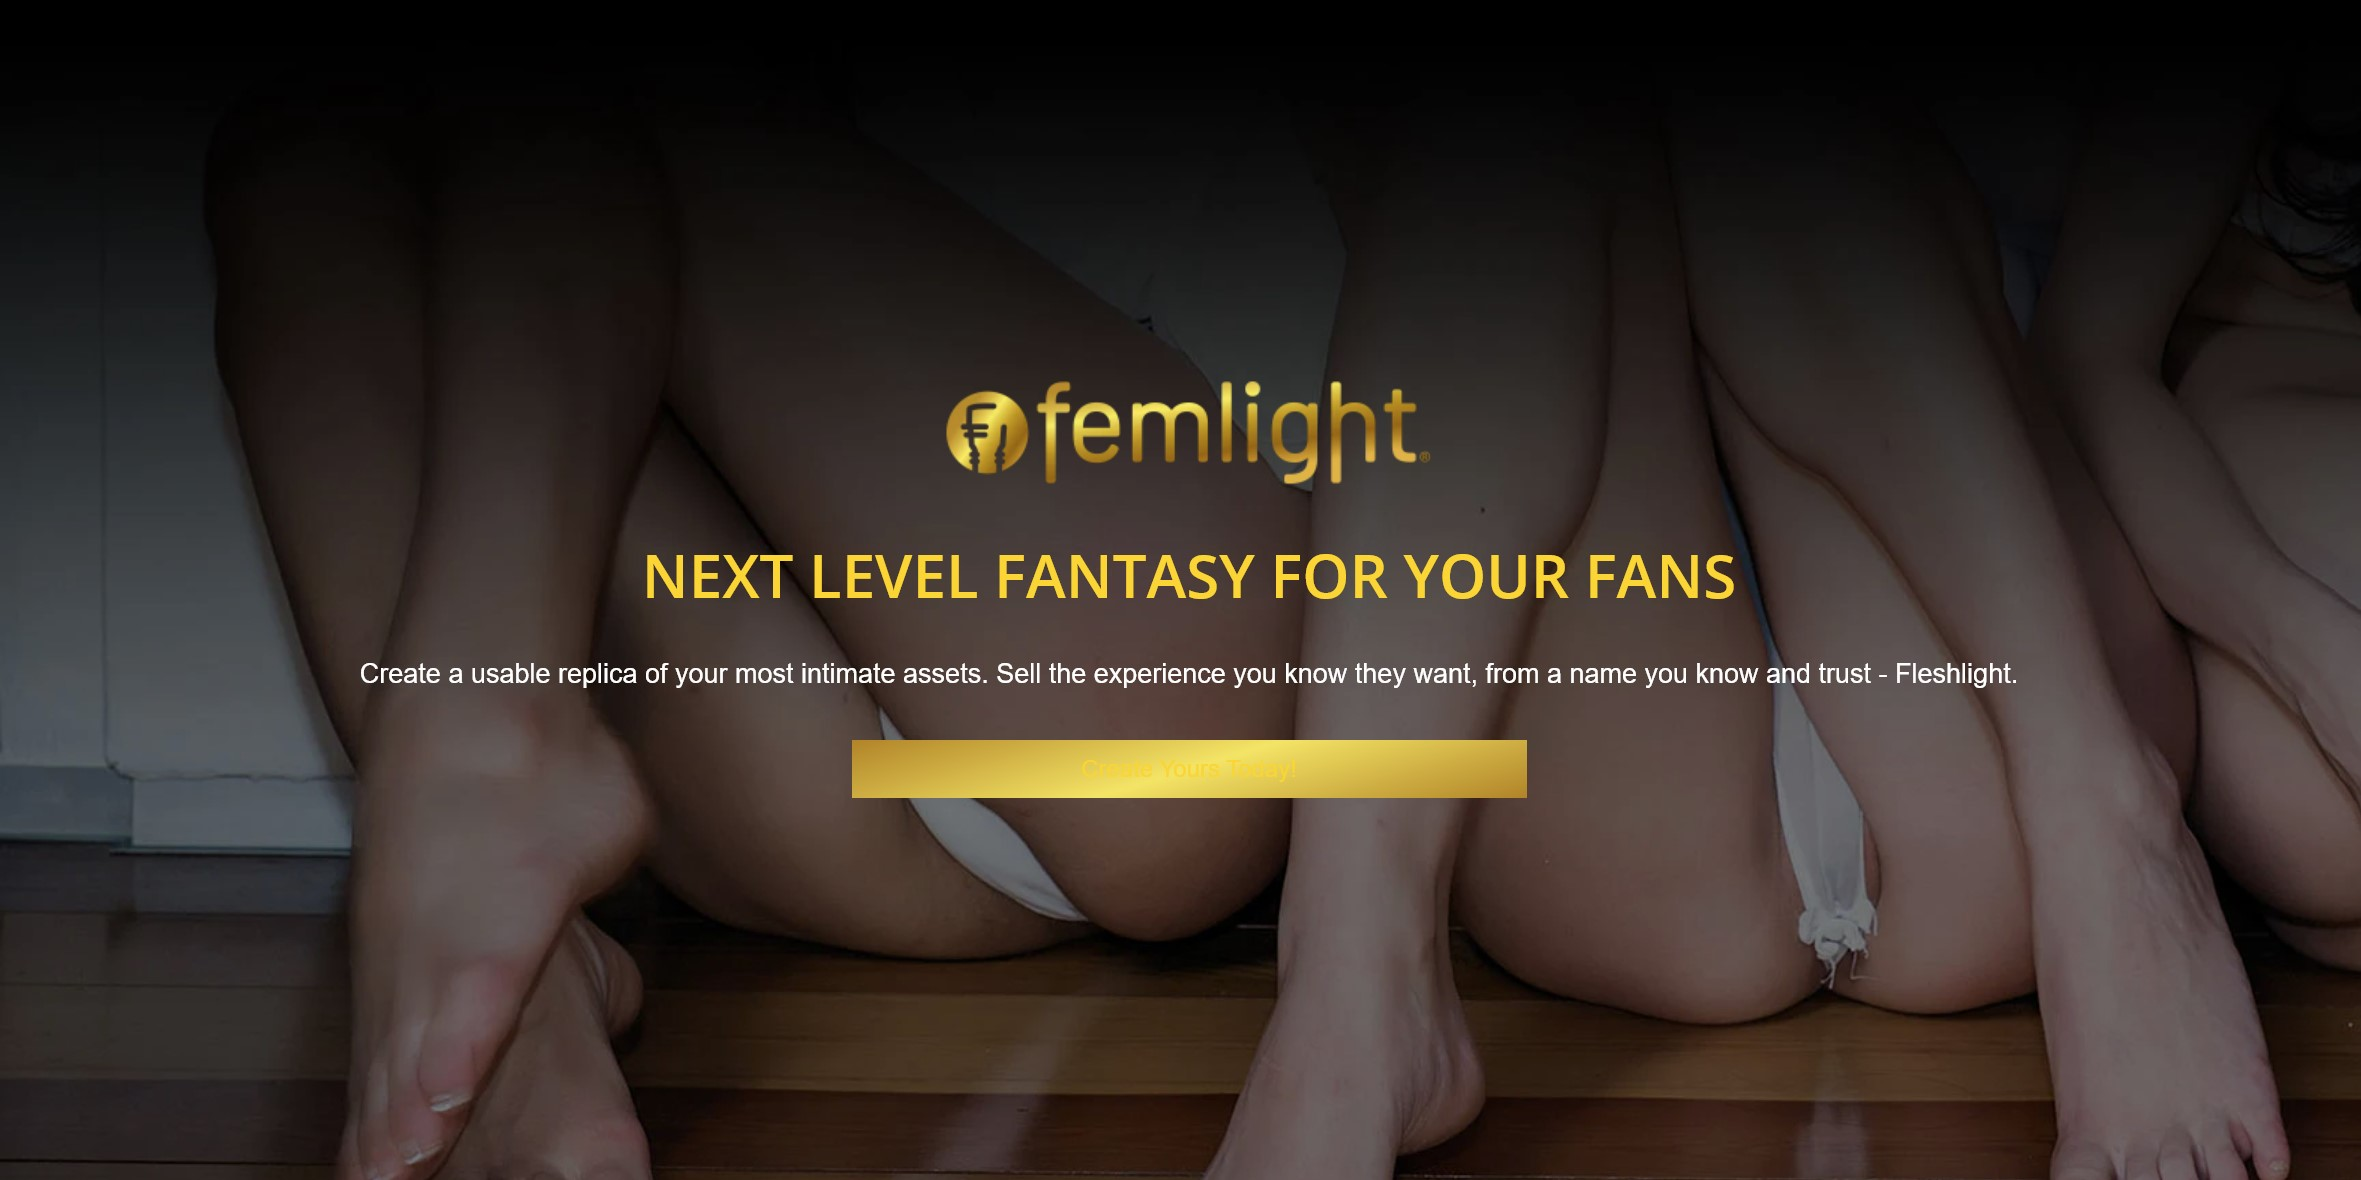 Femlight leaked new revolutionary Fleshlight product Image